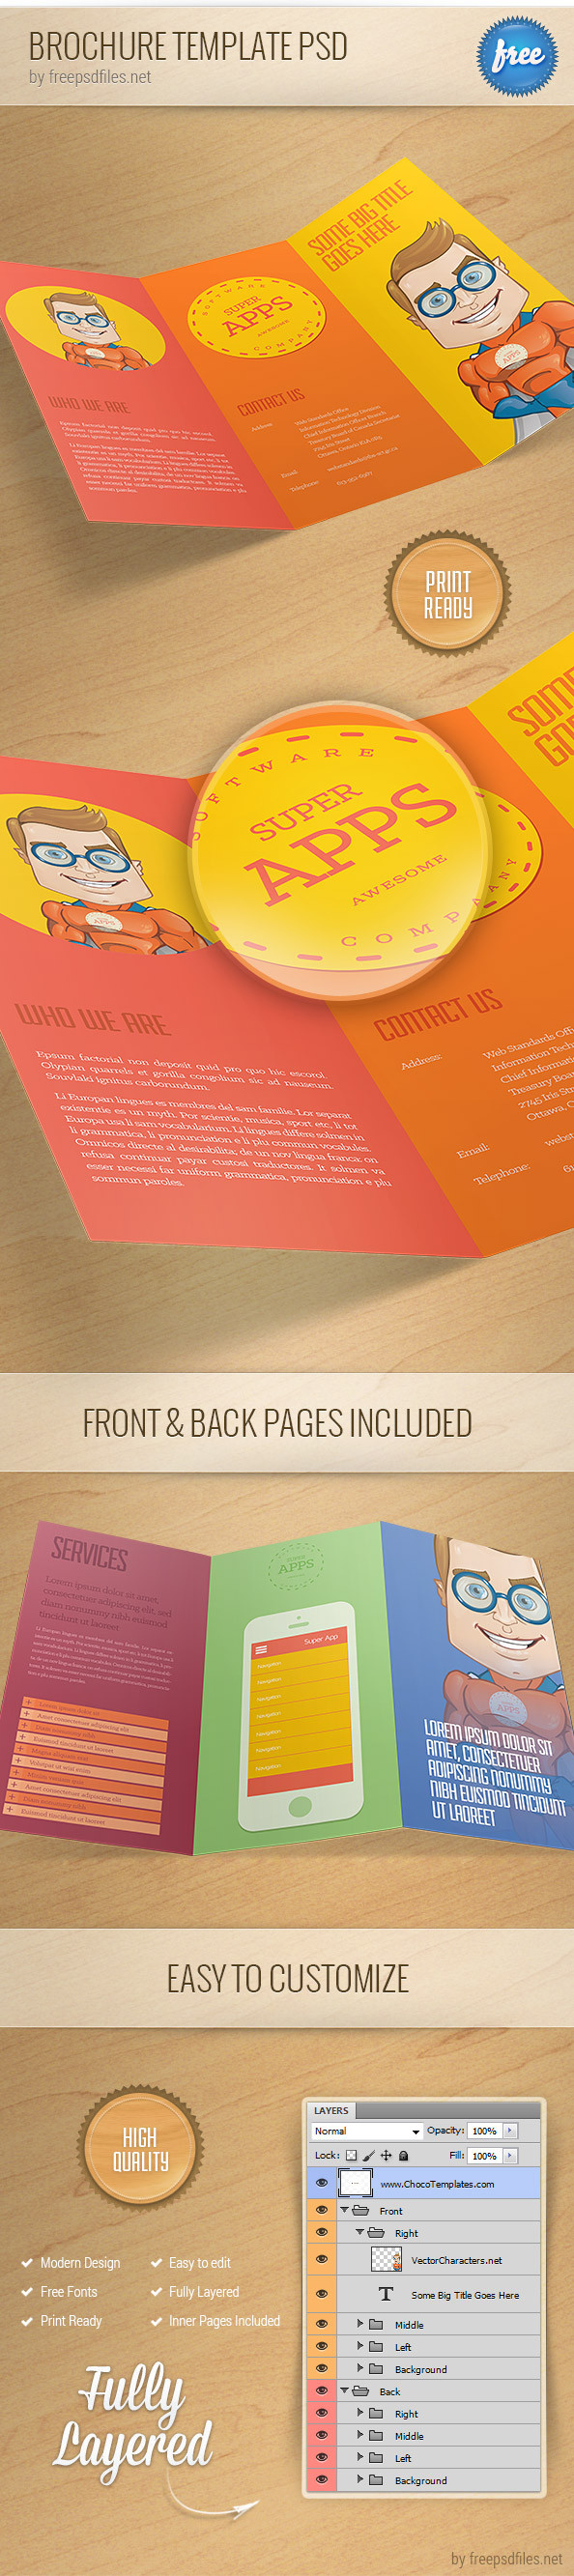 25 best free psd brochure templates free psd templates for Free psd brochure template